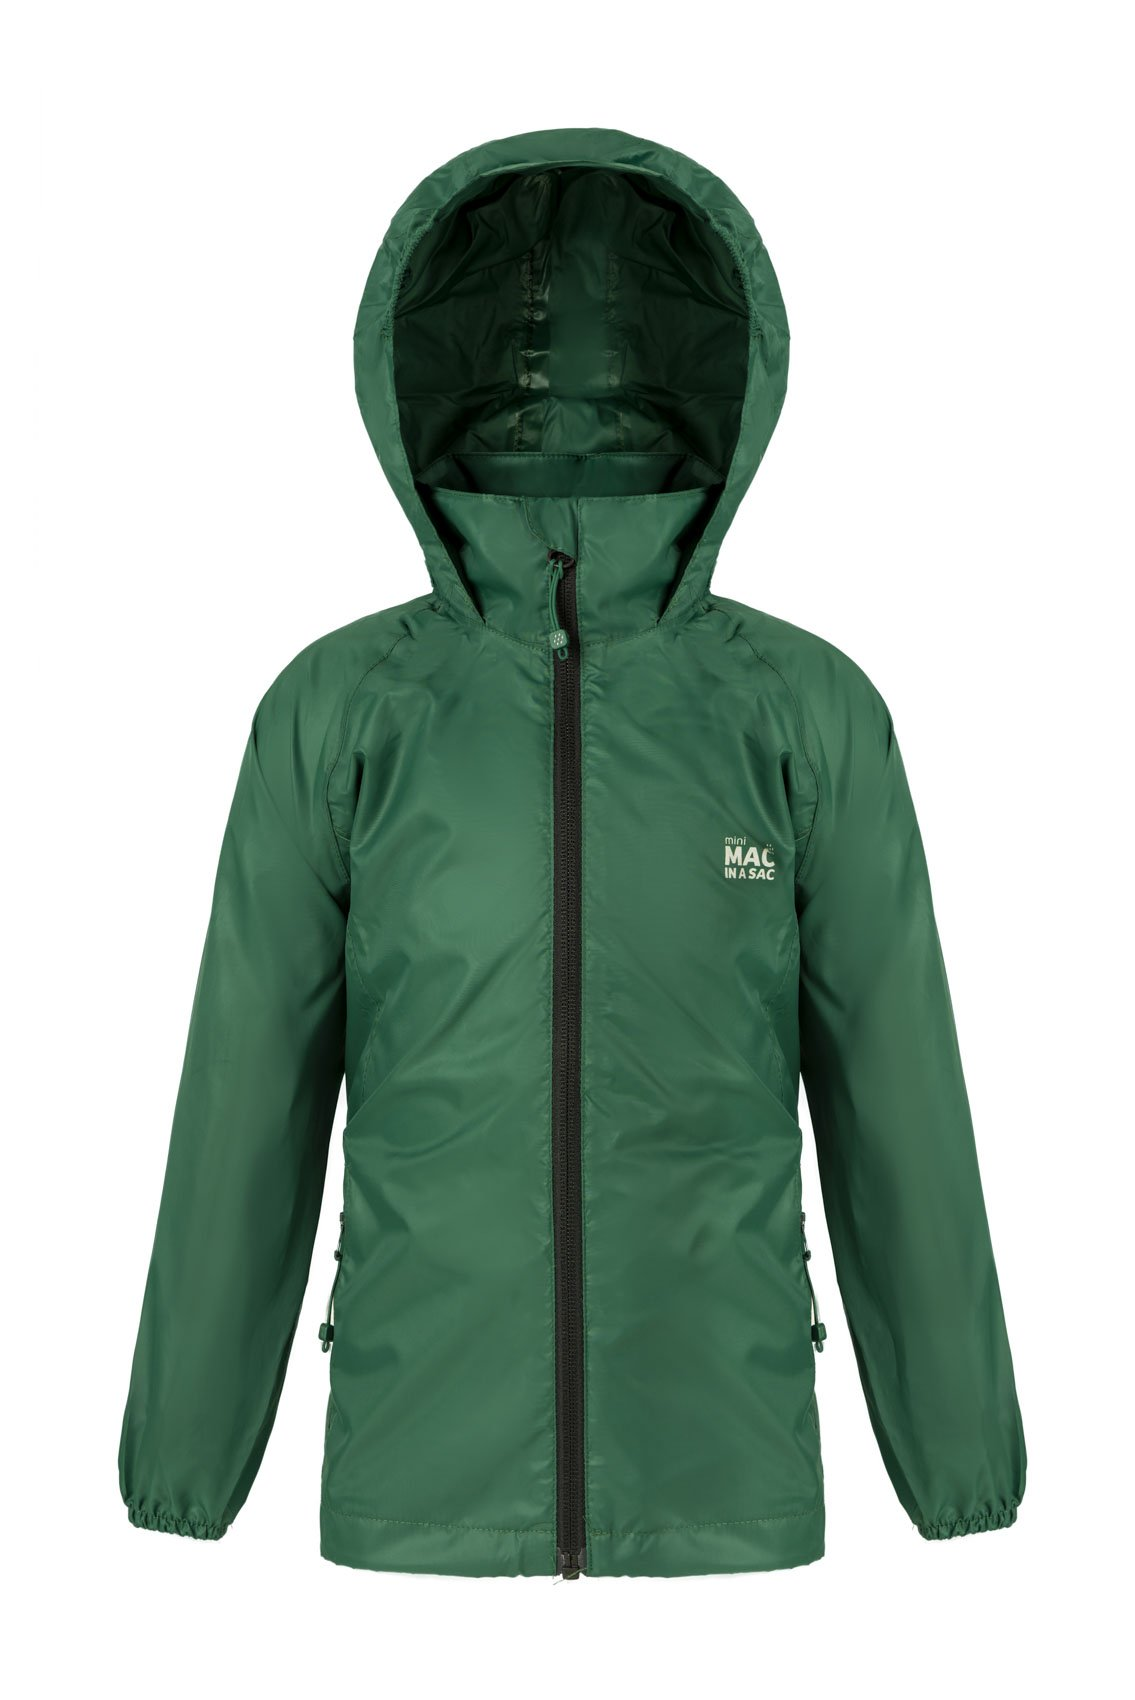 Kids Packable Waterproof Jacket - Bottle Green